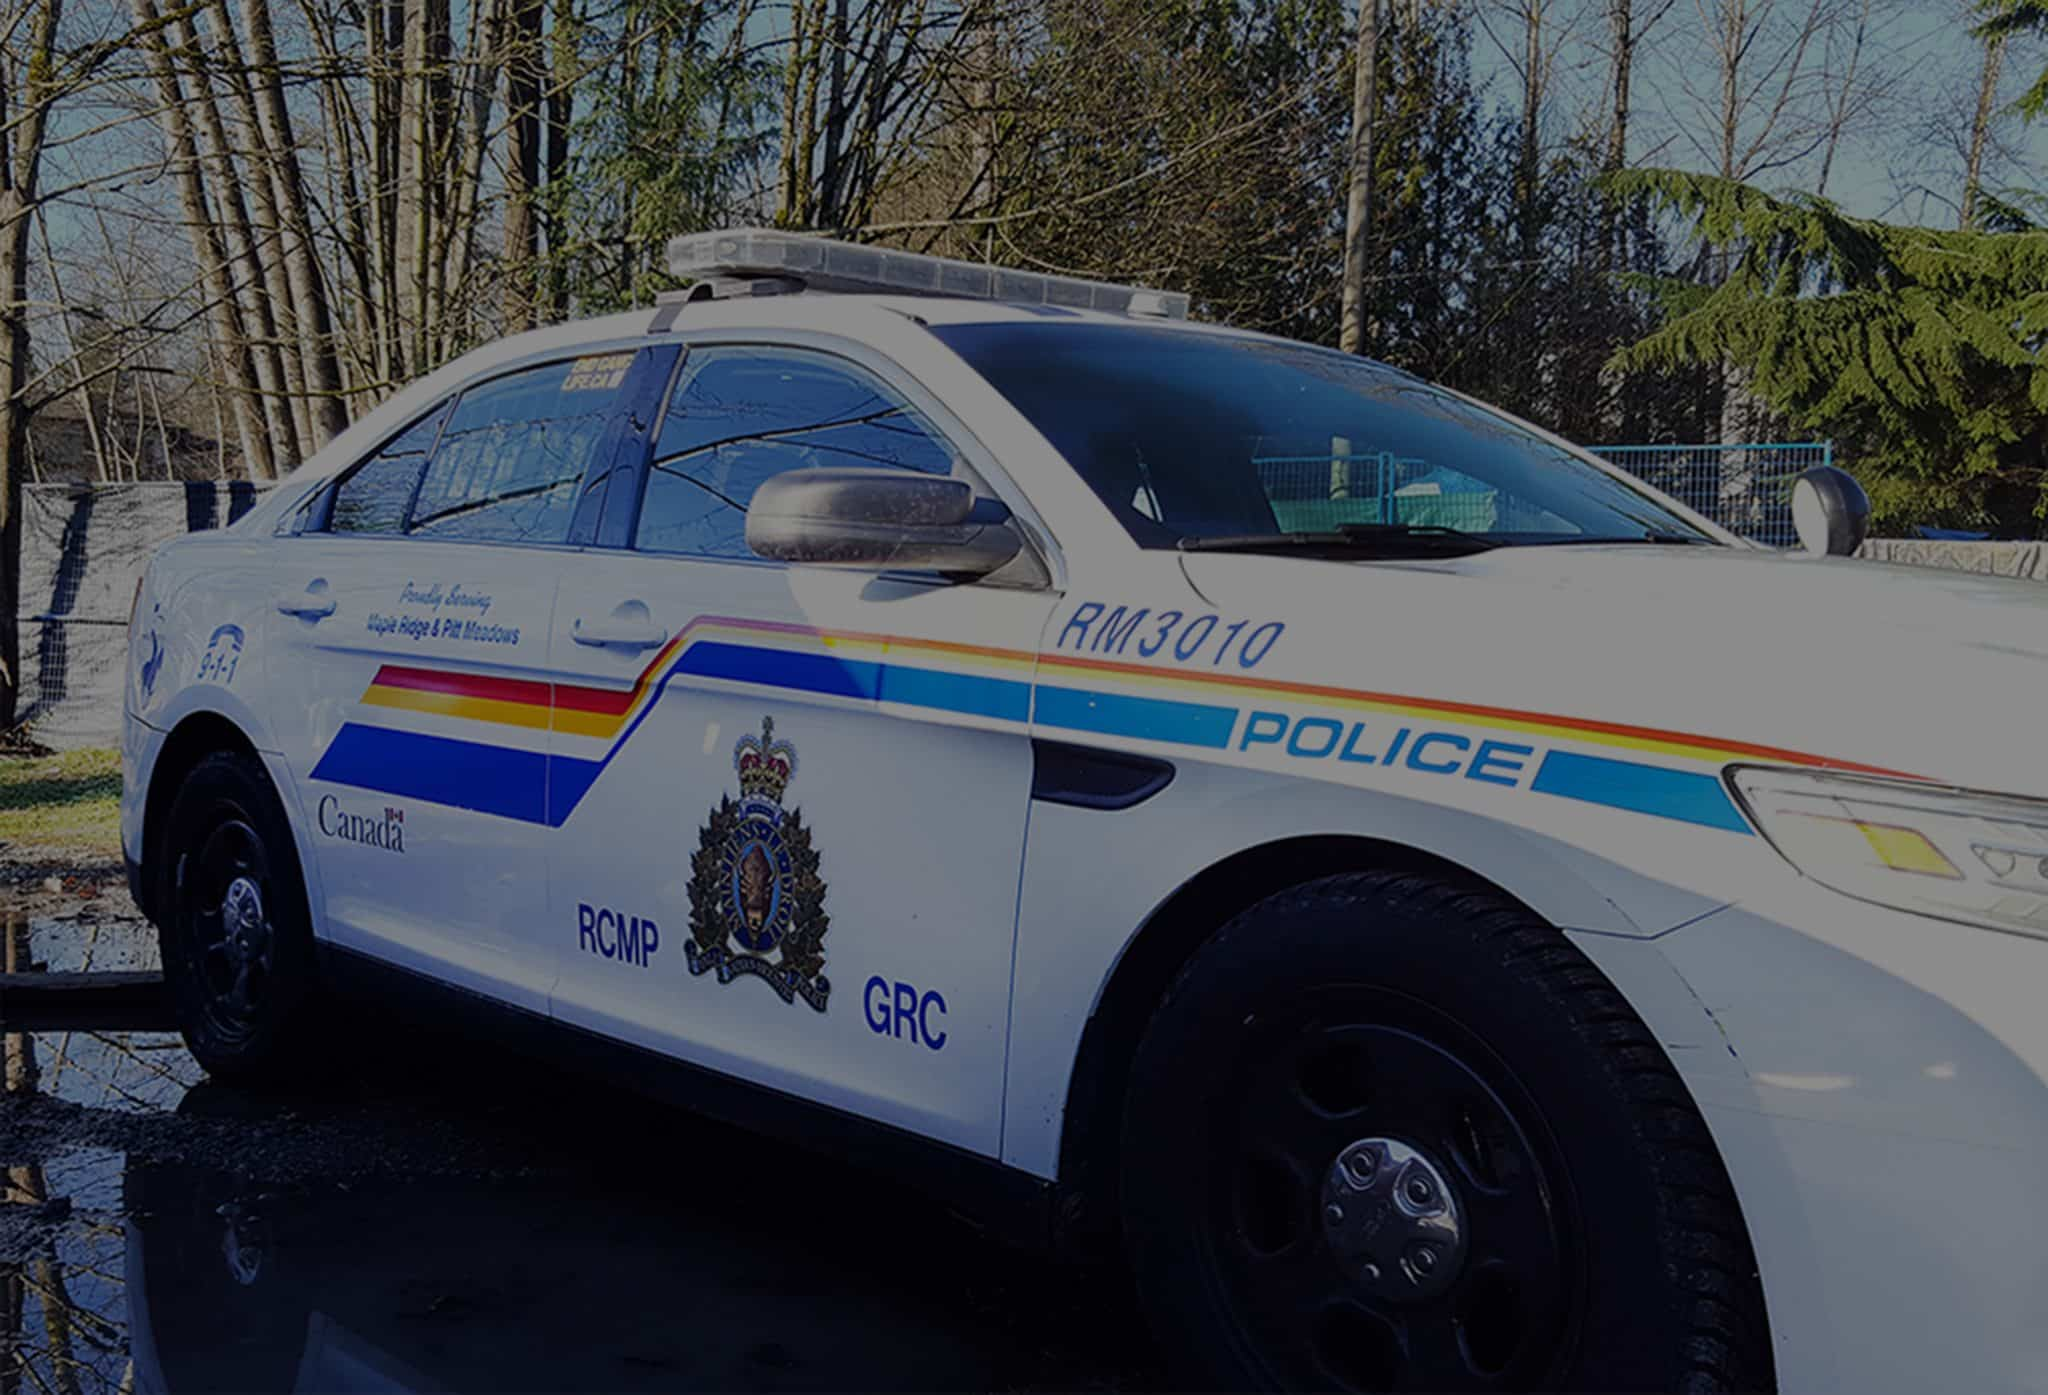 RCMP police cruiser outside of Anita Place tent city in Maple Ridge